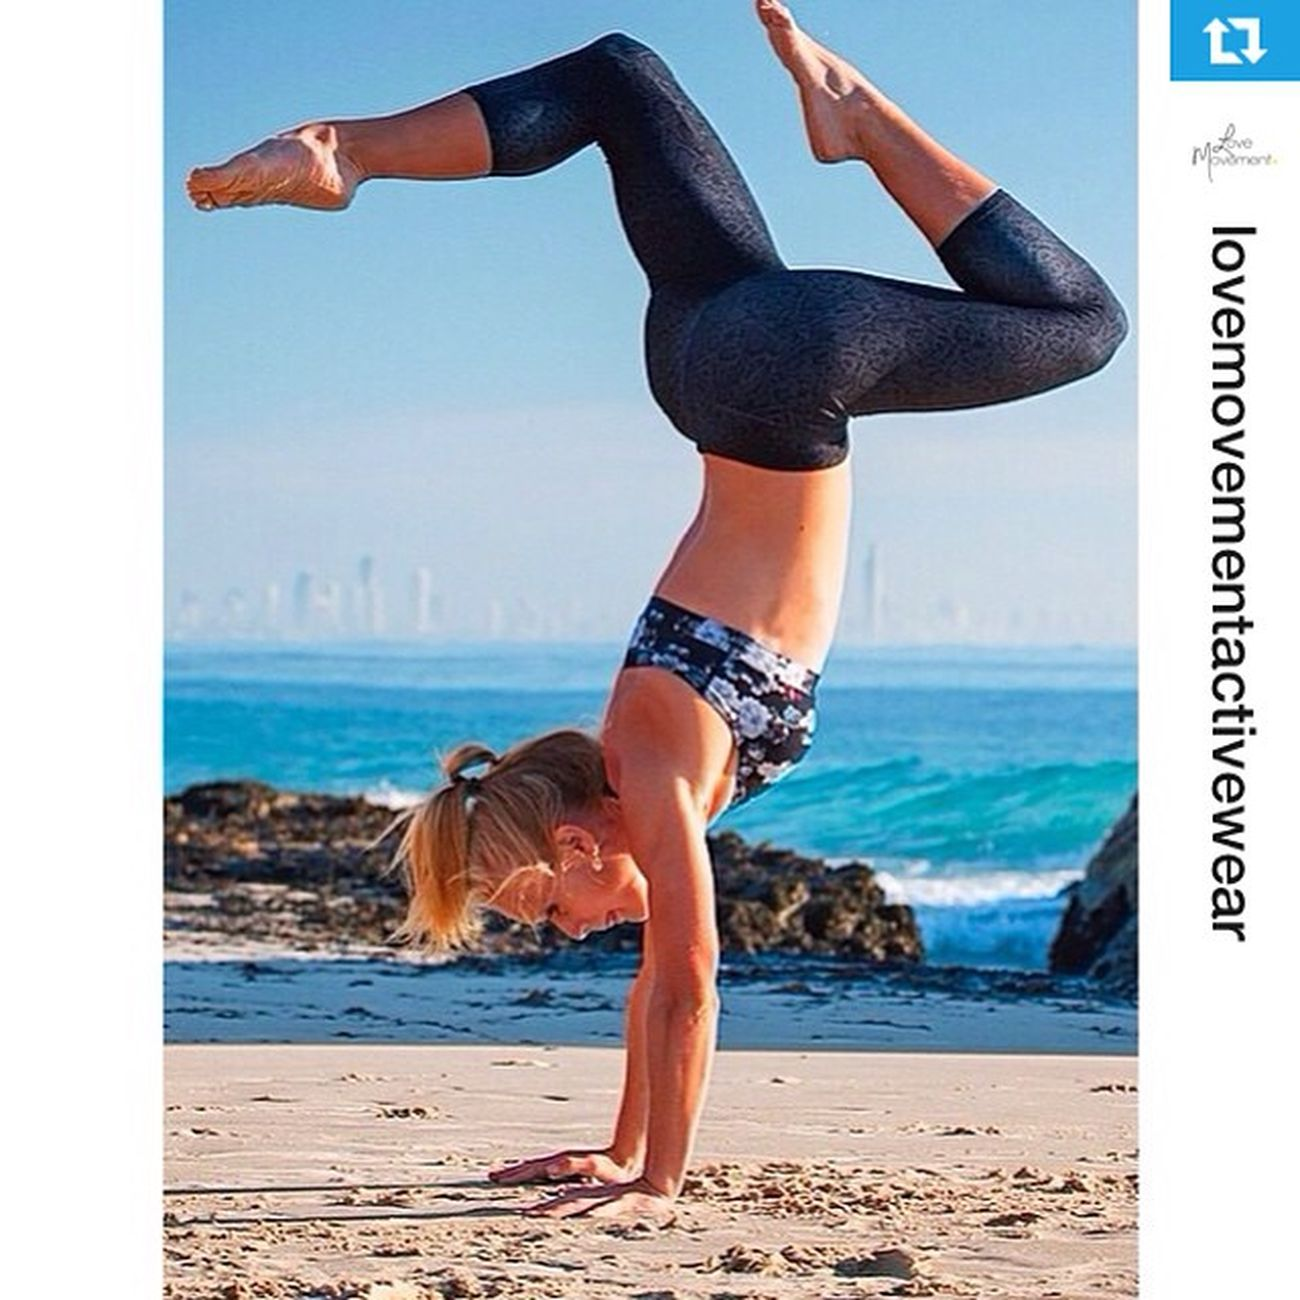 Repost from @lovemovementactivewear with @repostapp of a shoot with @courtneygilfillan ... Athleticism Handstand  Triathlete ・・・How all Sunday Mornings should start 💛 loving this shot of @courtneygilfillan in the Body Science Dahlia Bra , available online now at www.lovemovement.com.au Easylikesundaymorning Weekend Yoga Namaste BodyScience Activewear Beachlife Yogaeveryday Moveyourbody Streetwear Swimwear Compression Aussie Australianmade Studiotostreet Sportluxe Athlete